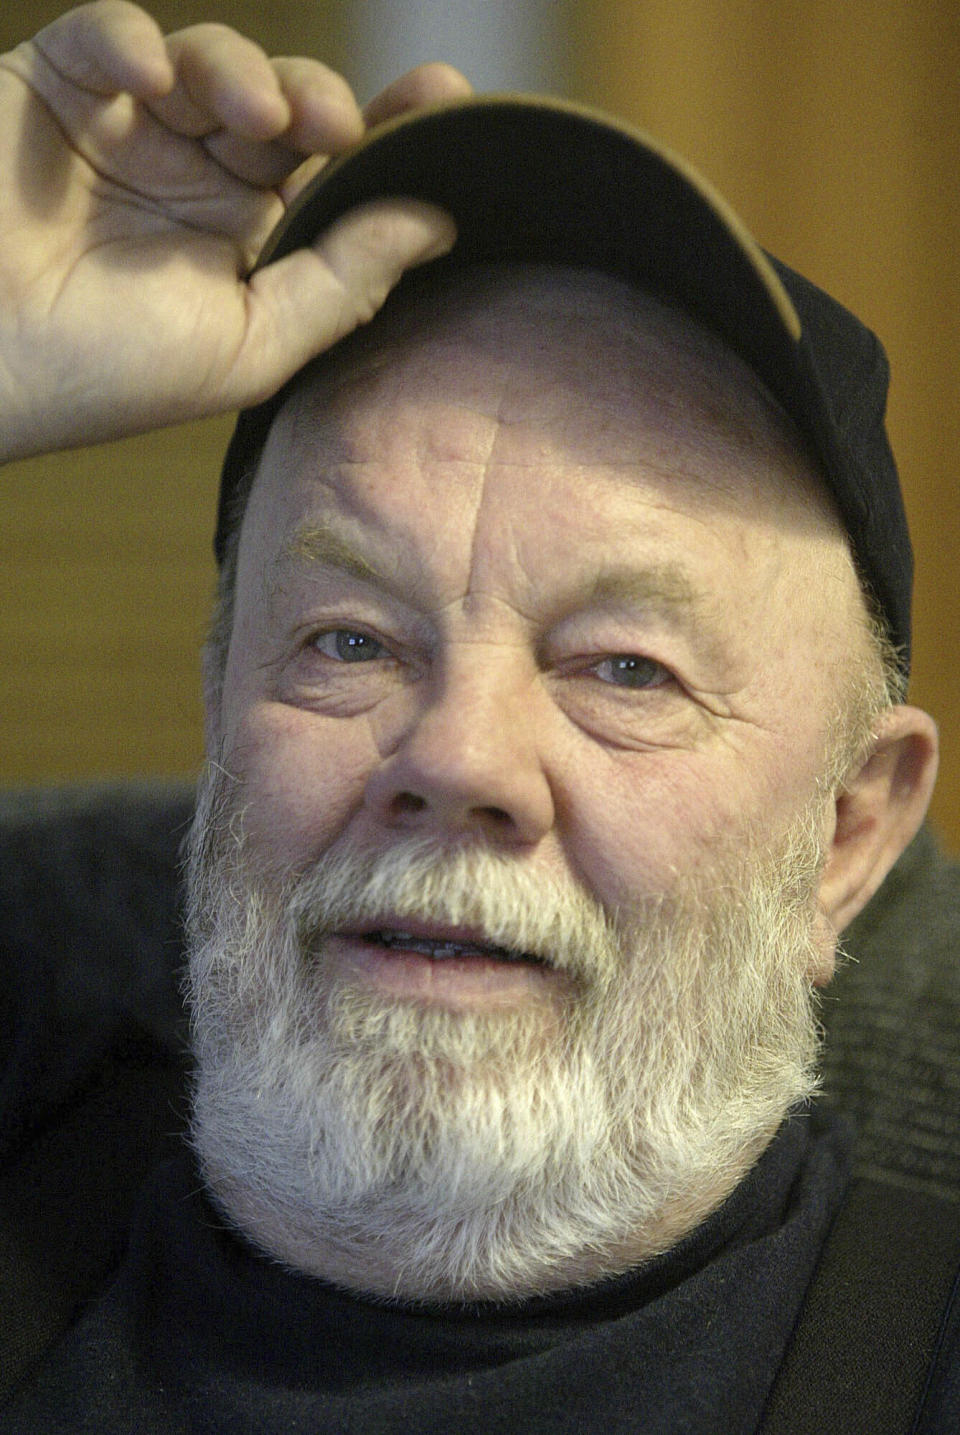 FILE - Writer Gary Paulsen appears at his Willow, Alaska, home on Feb. 10, 2005. Paulsen died Wednesday, Oct. 13, 2021 at age 82. (AP Photo/Al Grillo, File)